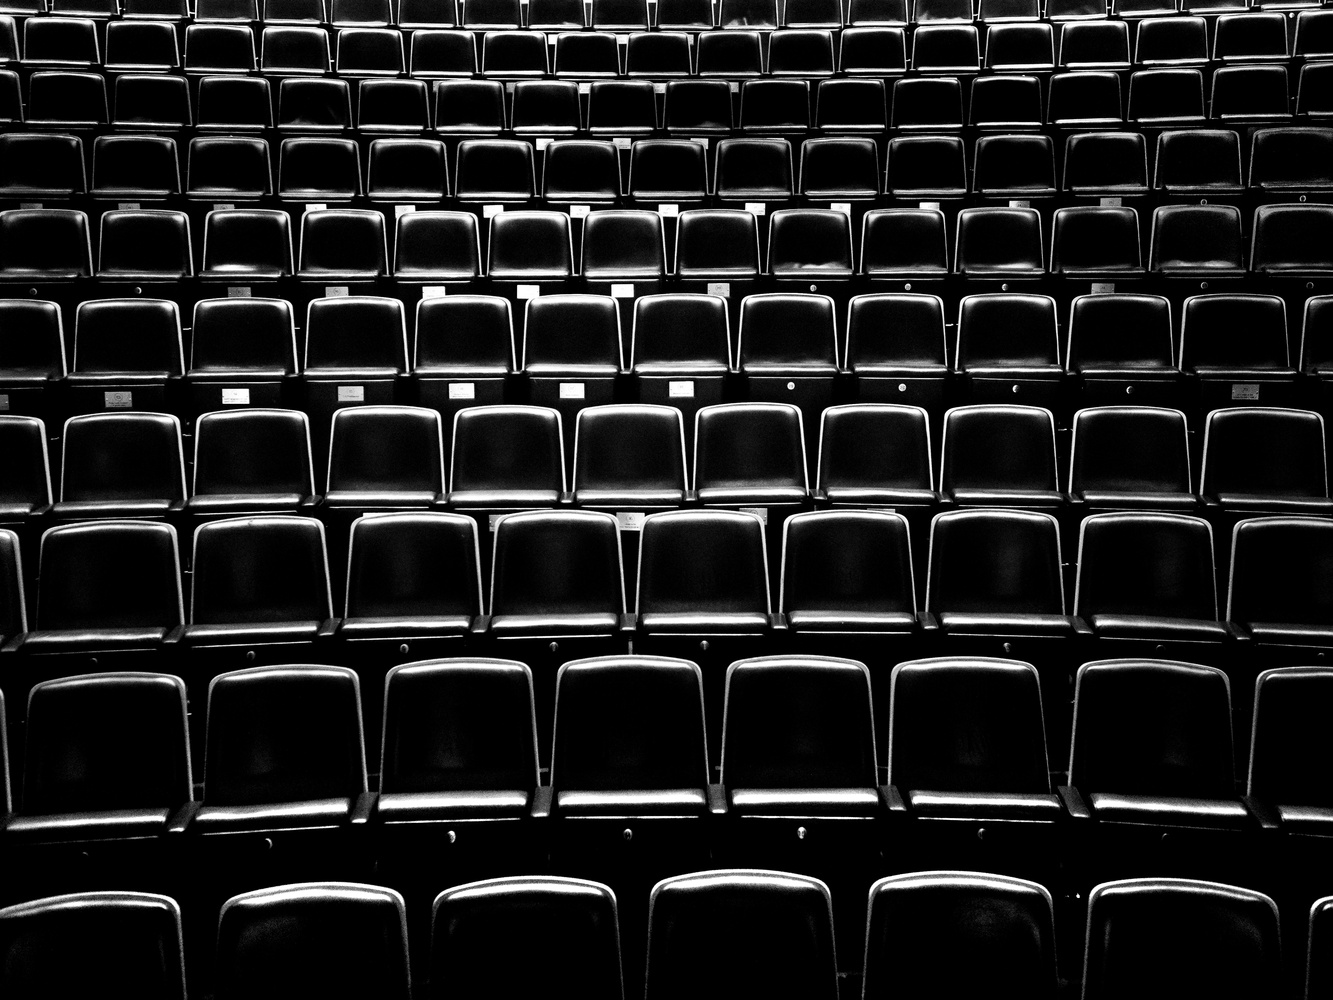 Waiting for the audience... by tomas doe